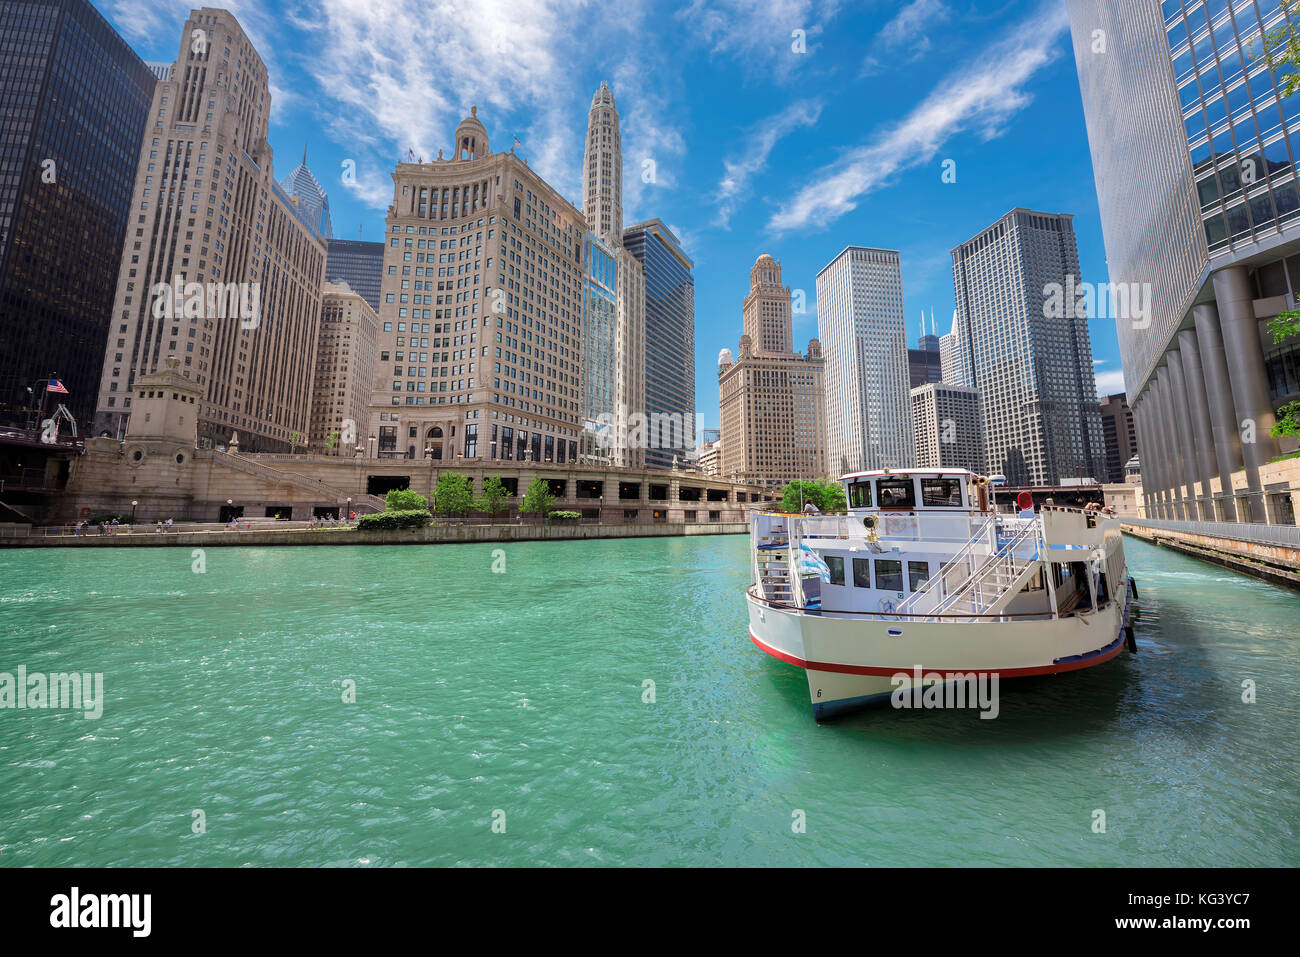 Tourists boat on Chicago river - Stock Image